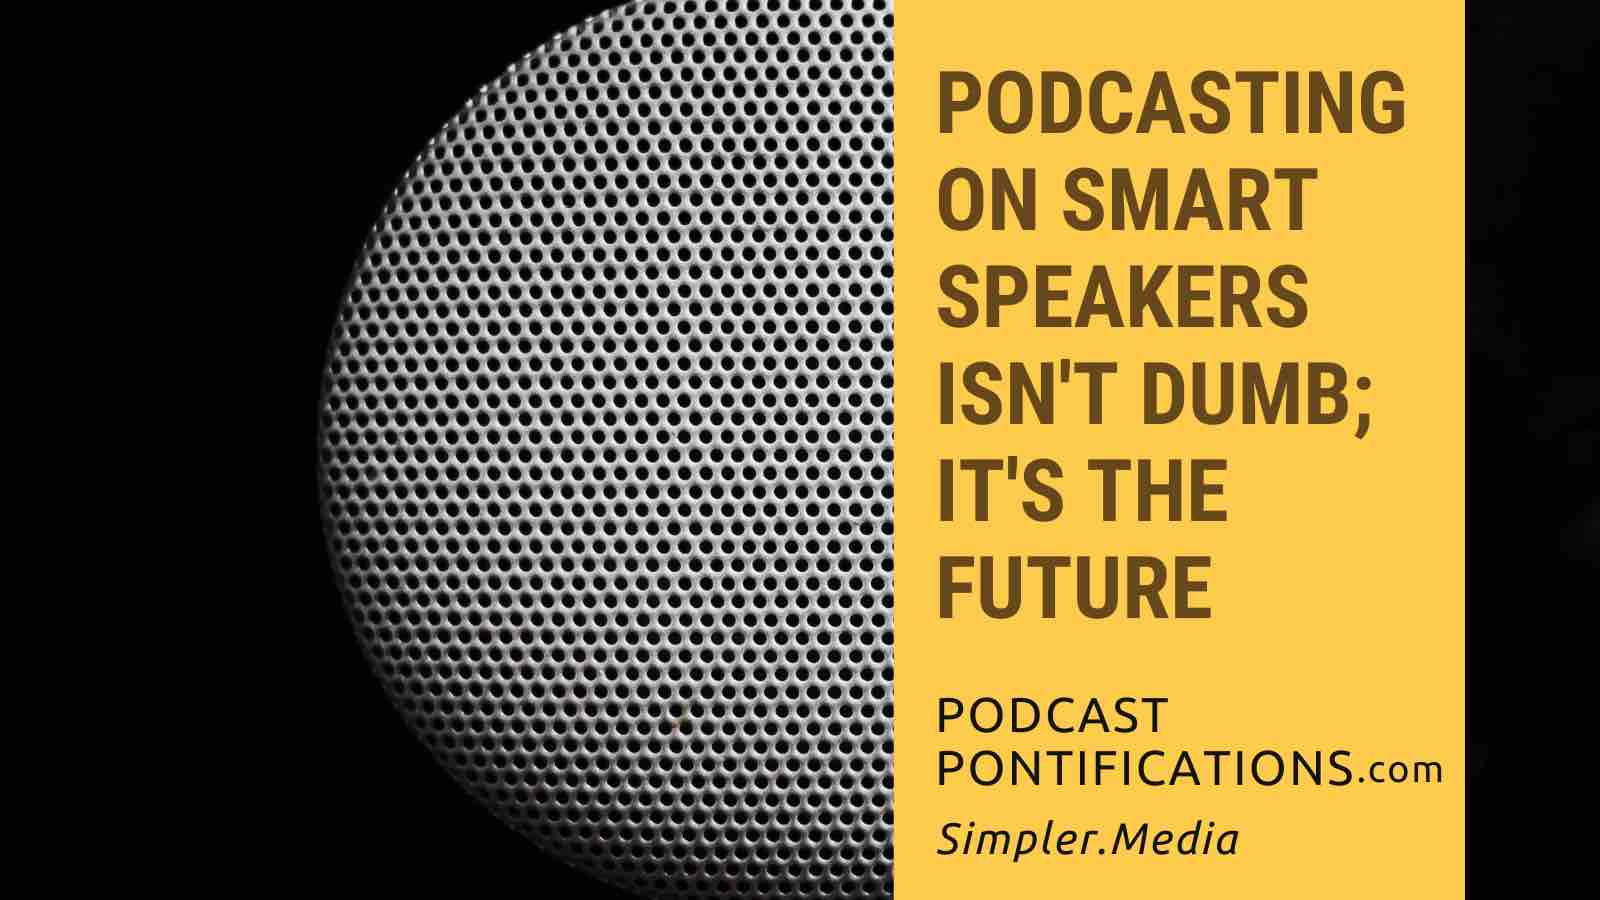 Podcasting On Smart Speakers Isn't Dumb; It's The Future